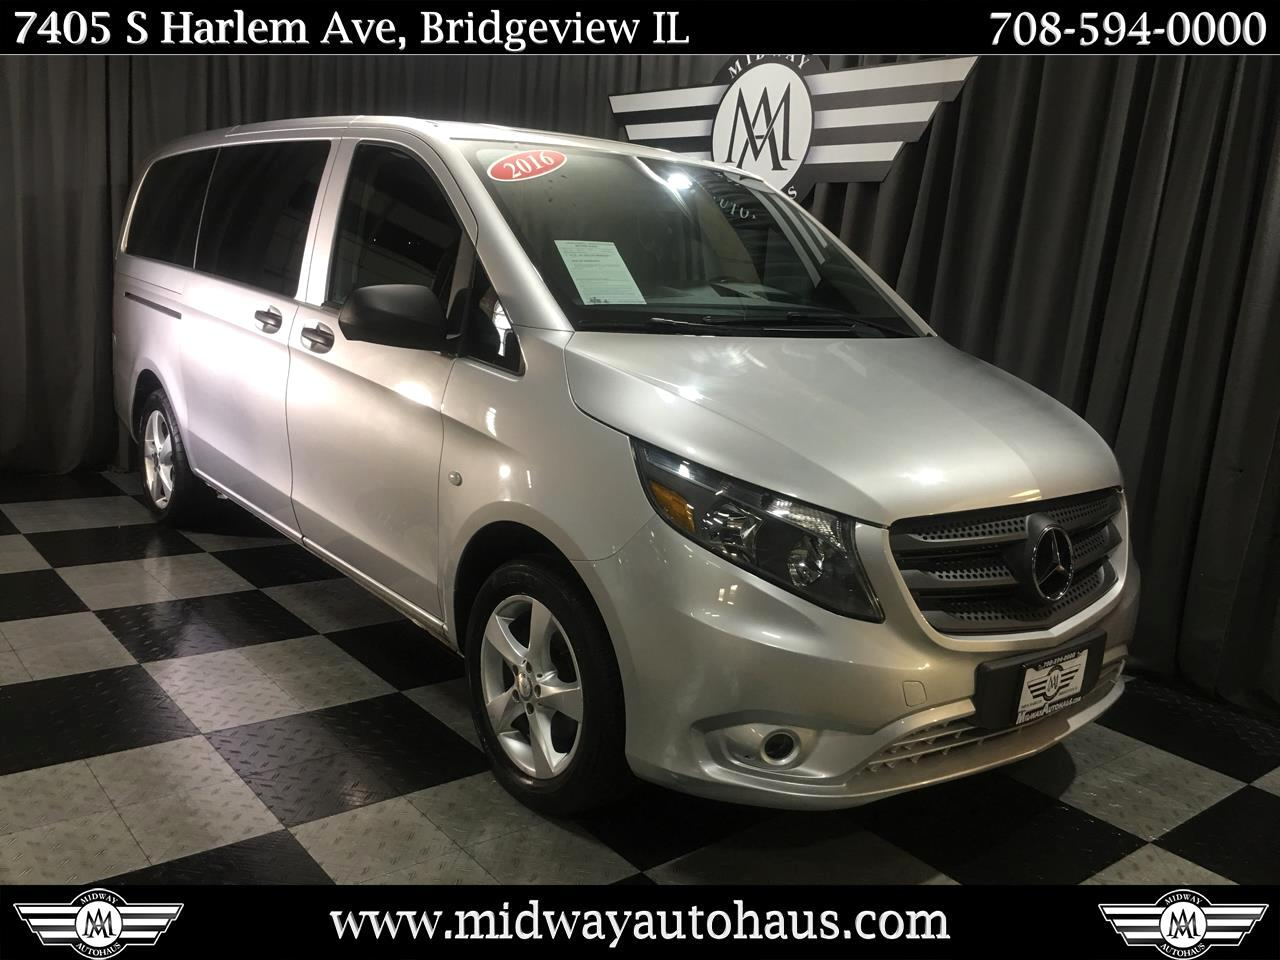 Pre-Owned 2016 Mercedes-Benz Metris Passenger Van RWD 126 in